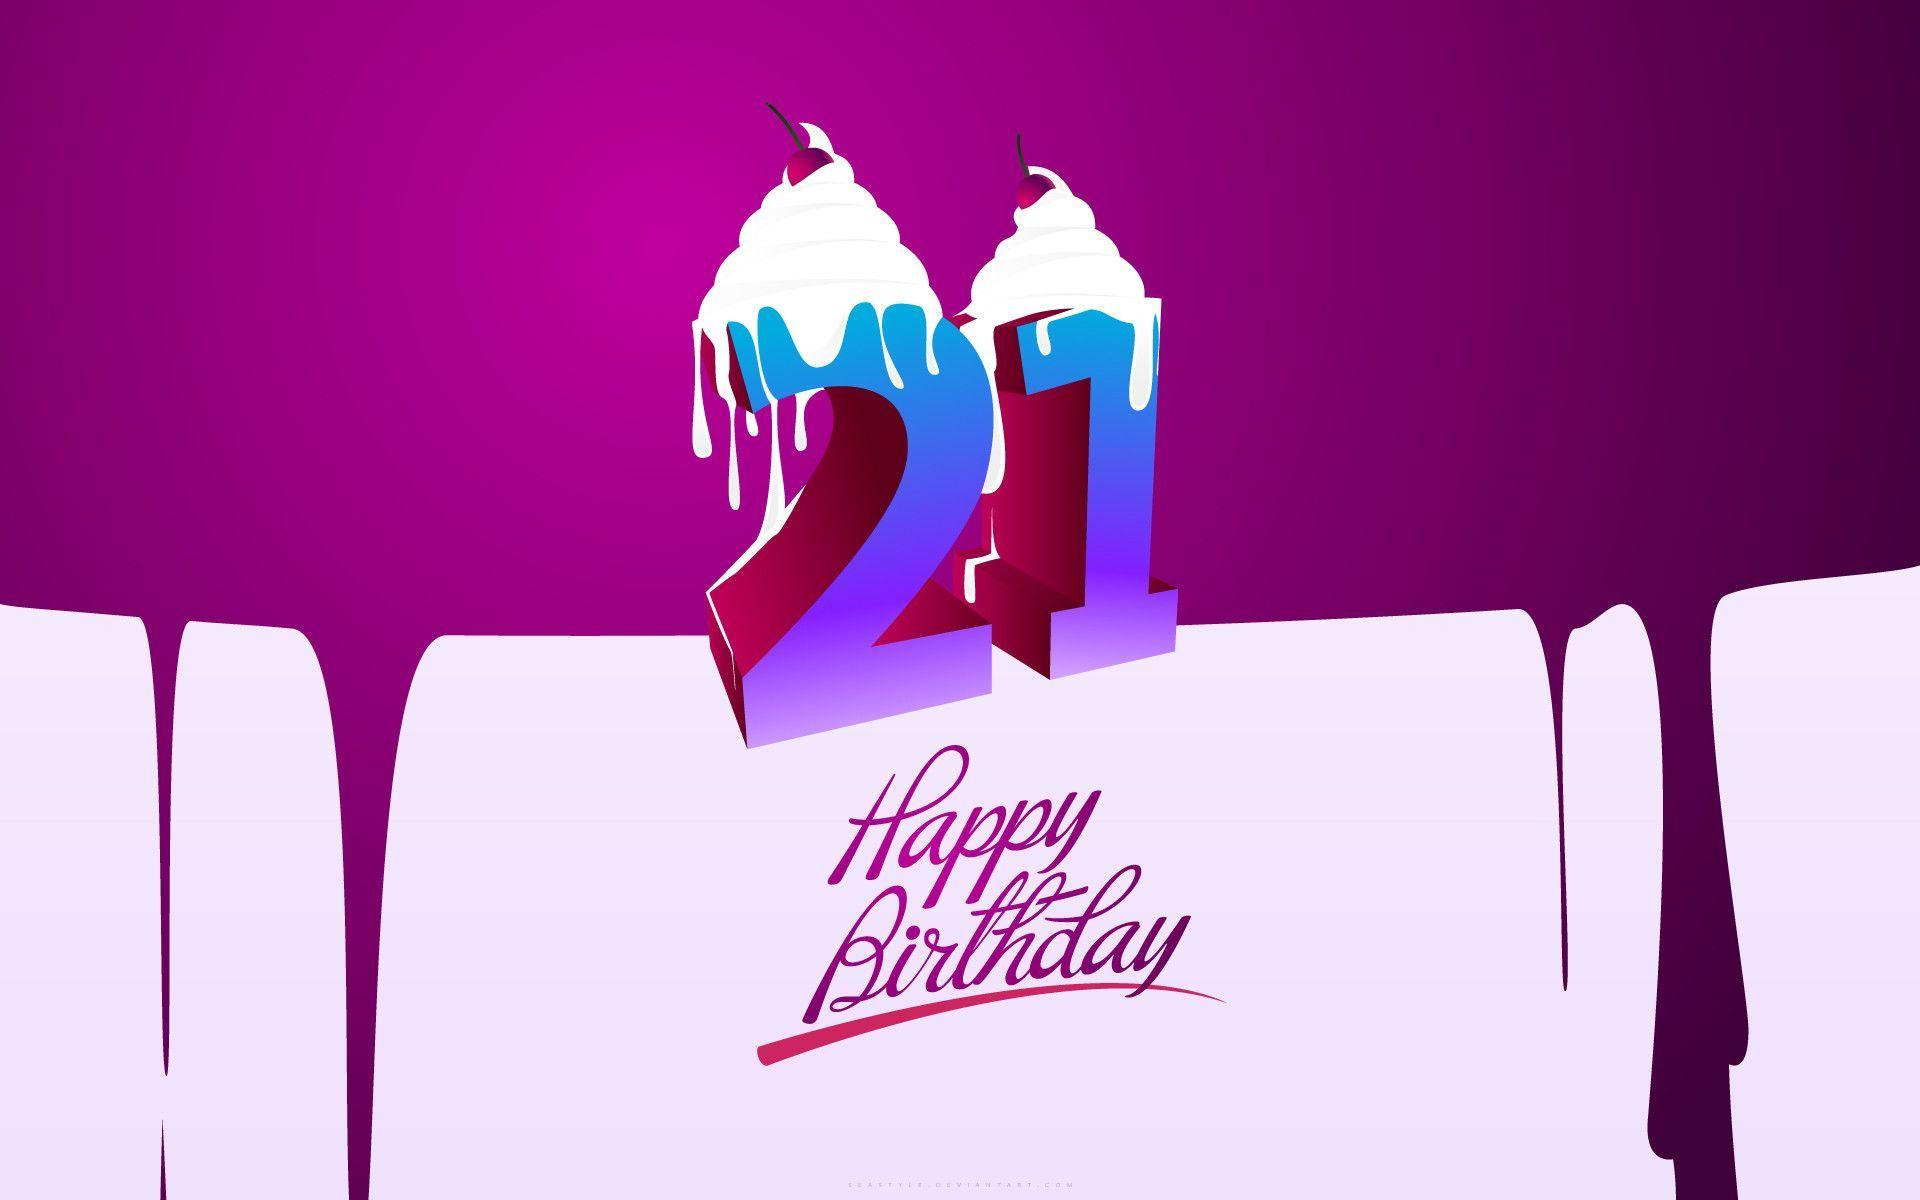 Wallpapers For > Happy Birthday Wallpapers With Name